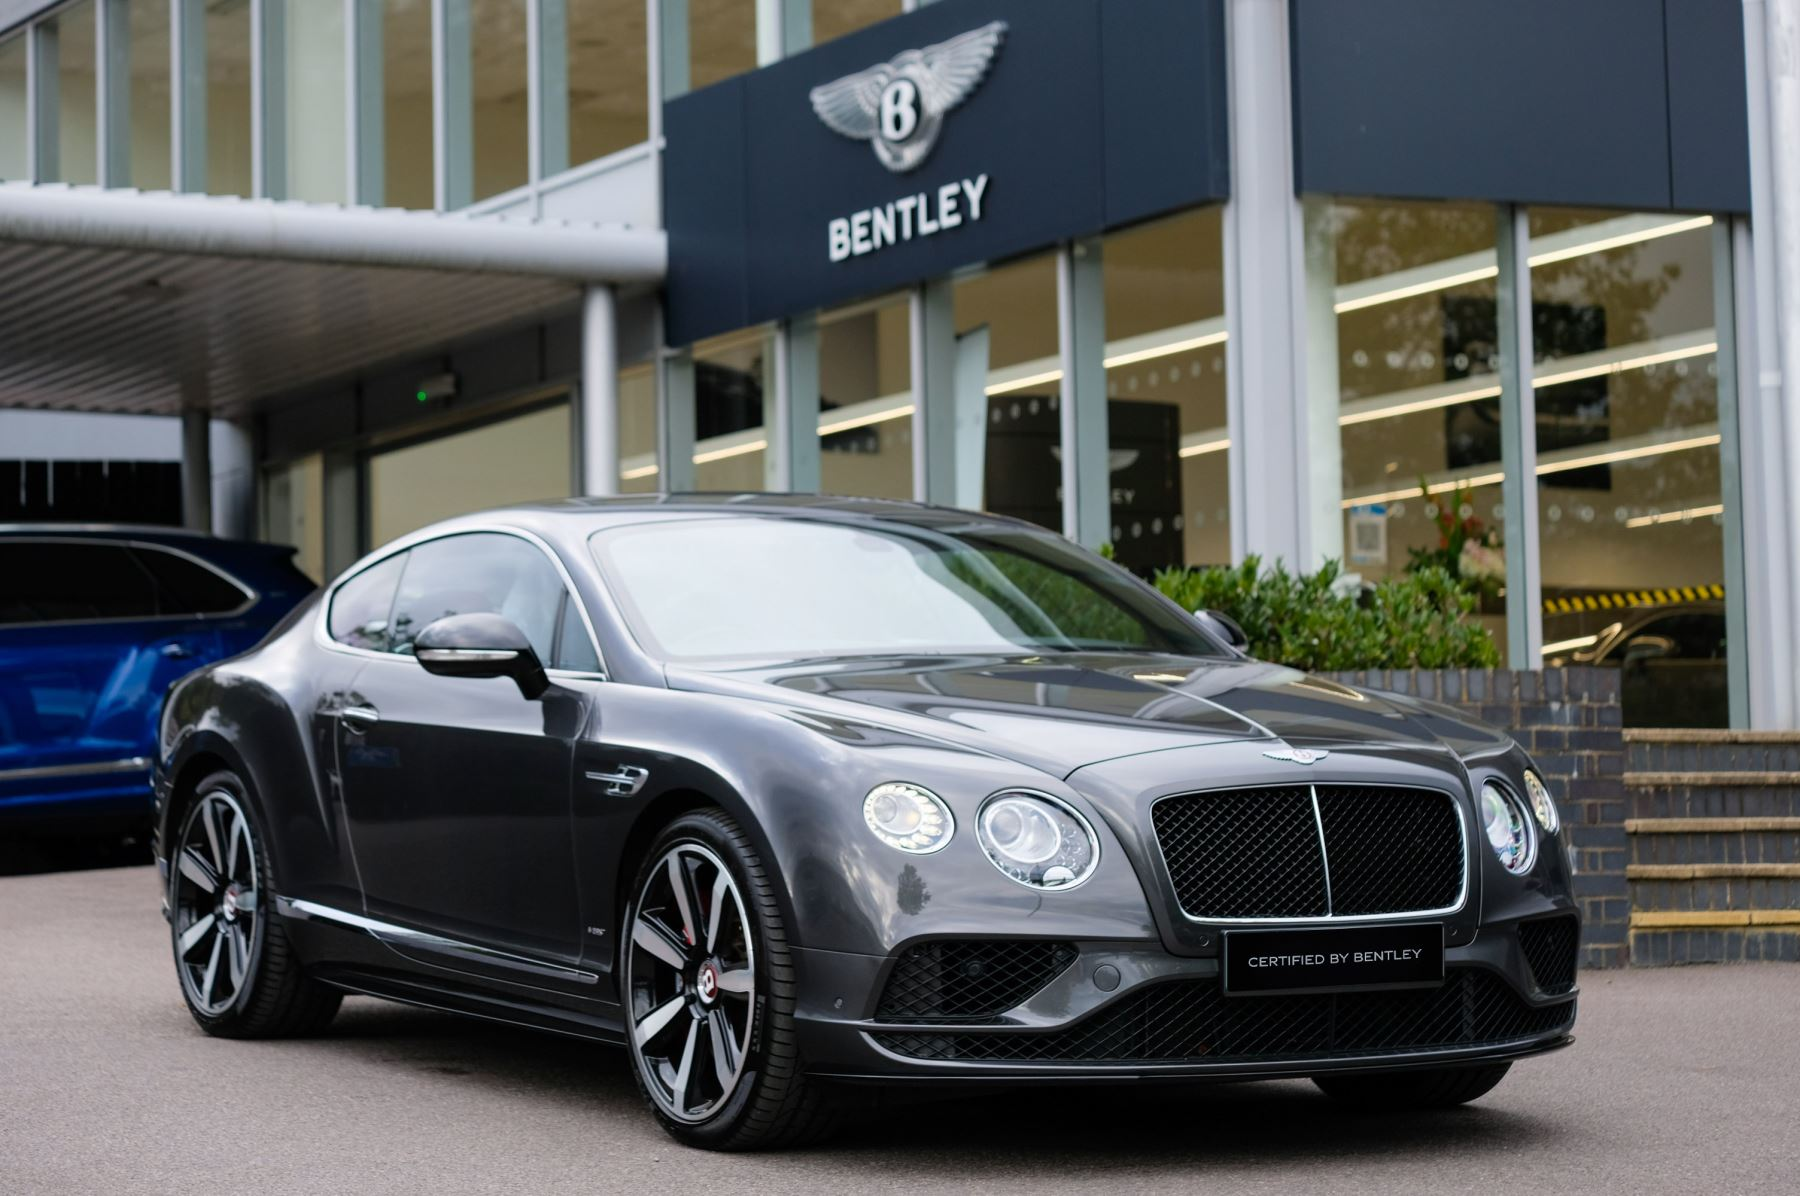 Bentley Continental GT 4.0 V8 S Mulliner Driving Spec - Sports Exhaust - Naim For Bentley Surround Sound System Automatic 2 door Coupe